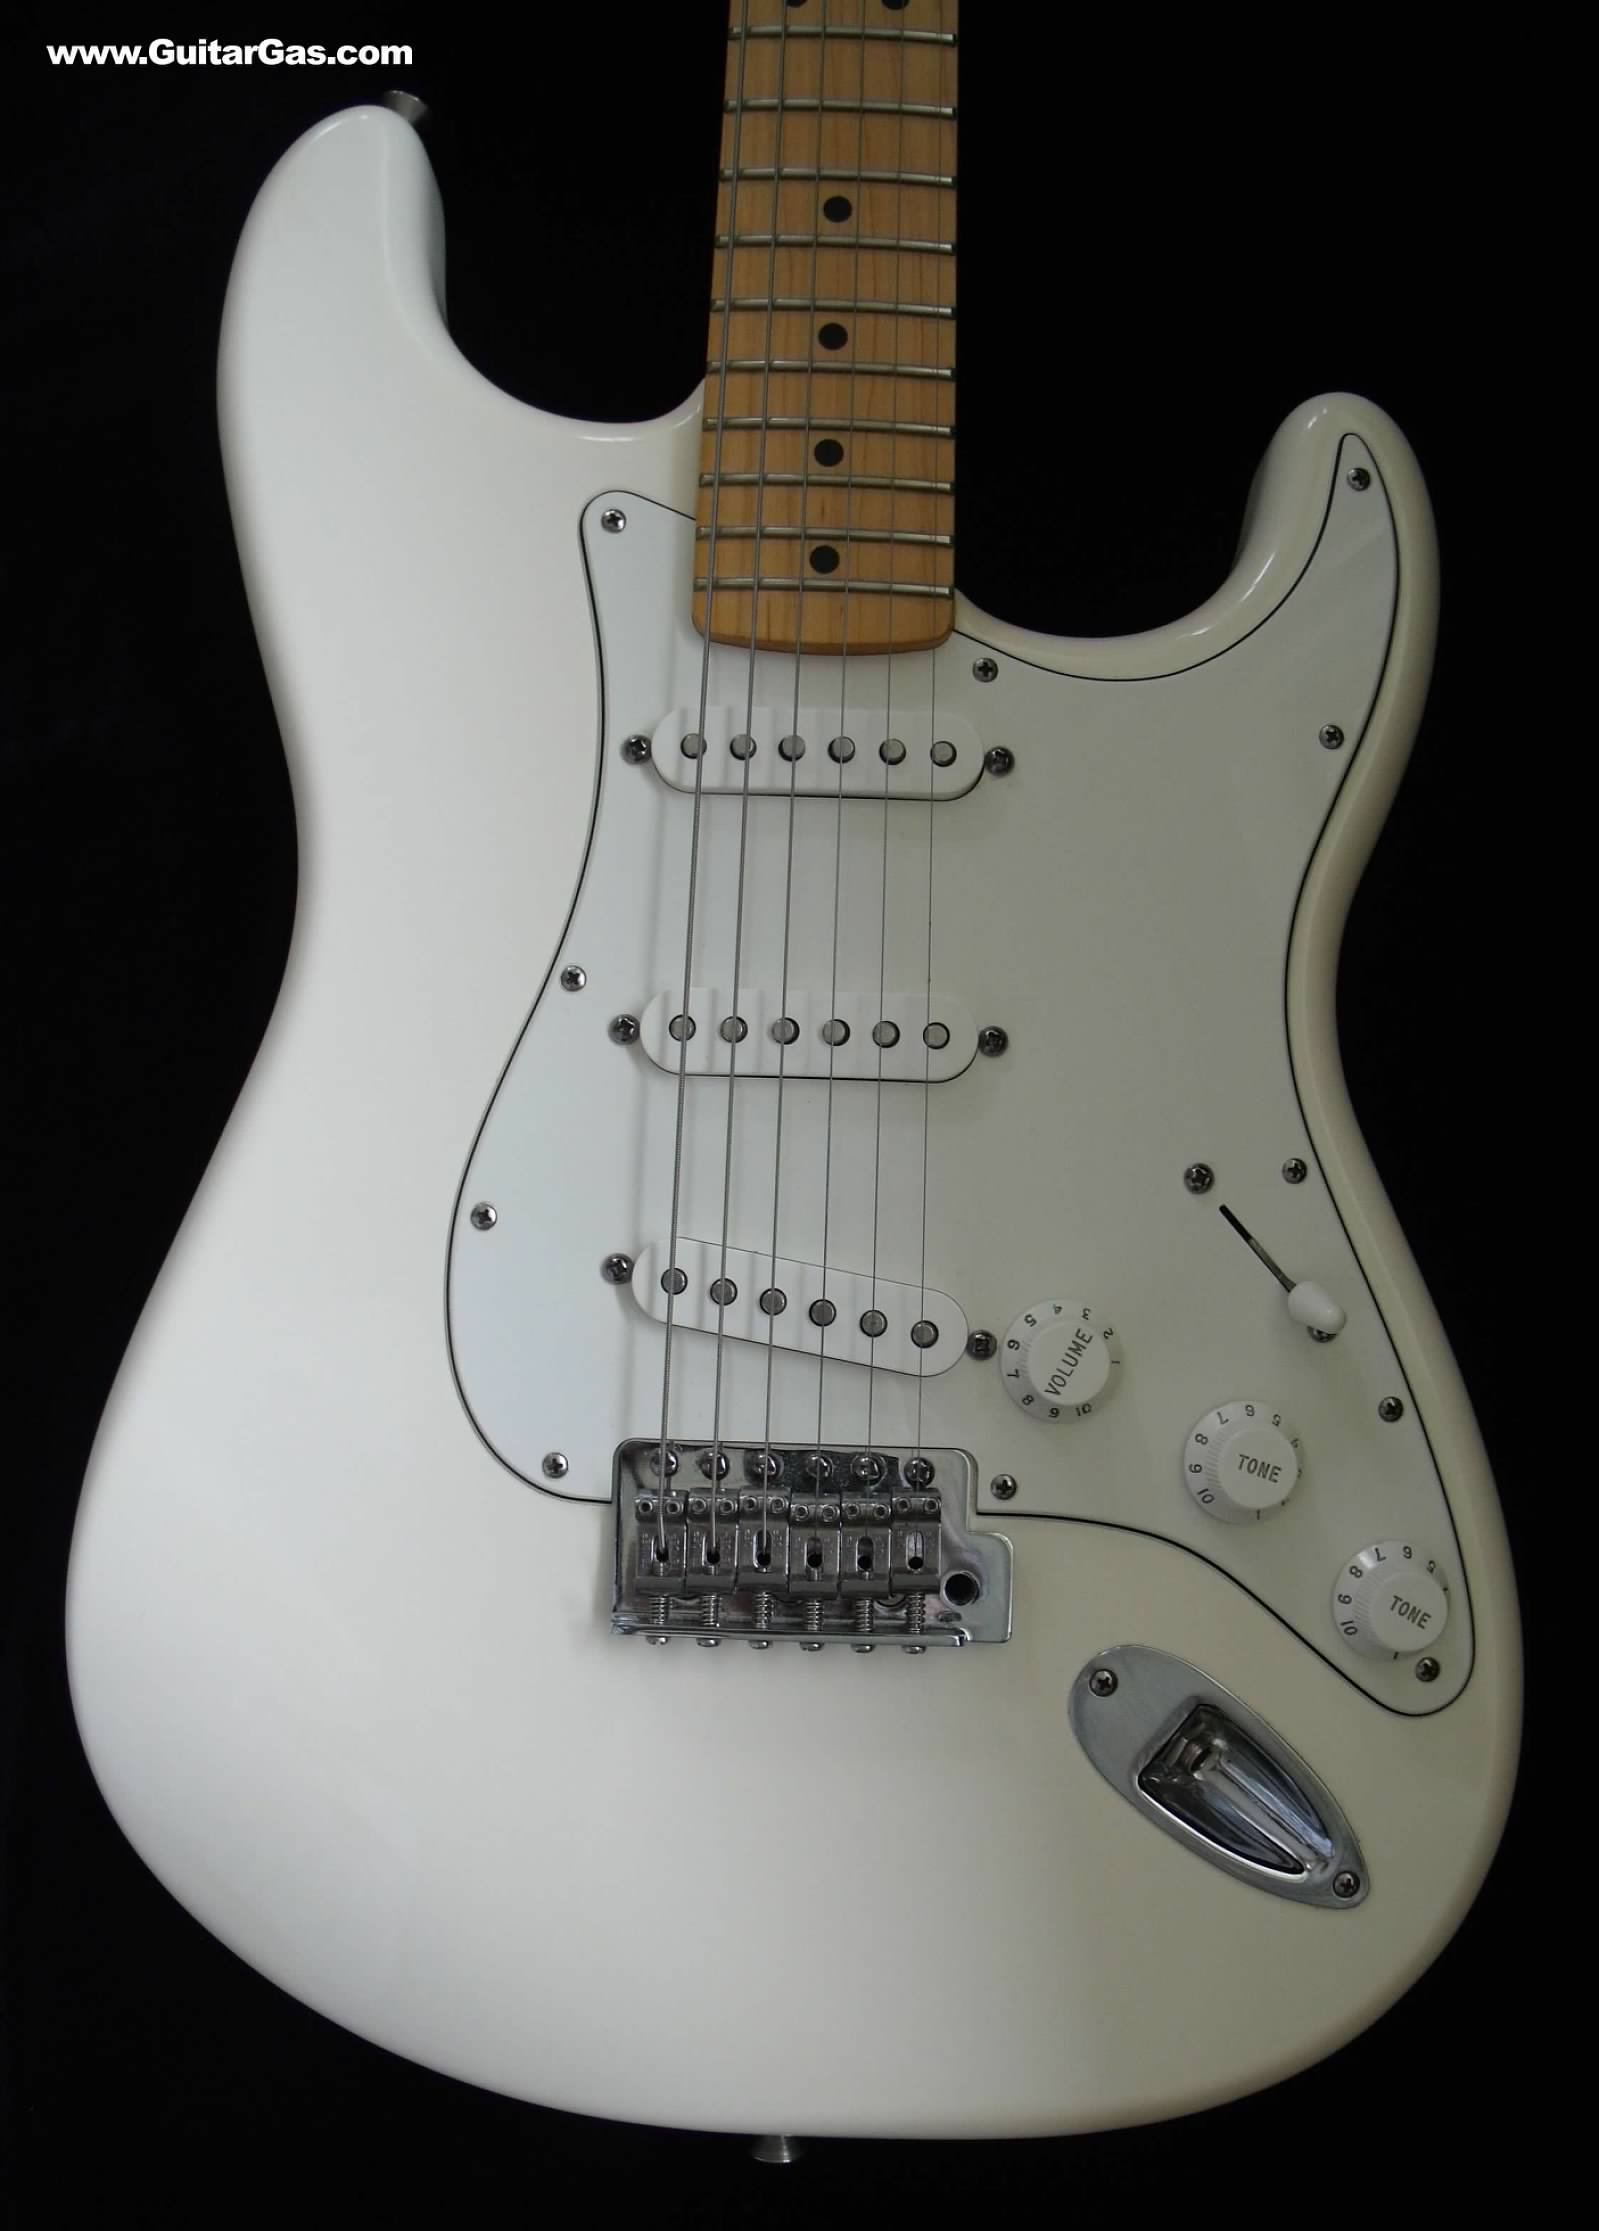 Fender Blacktop Hh Stratocaster Wiring Diagram Library Moreover Exelent Mexican Strat Hss Ornament Everything You